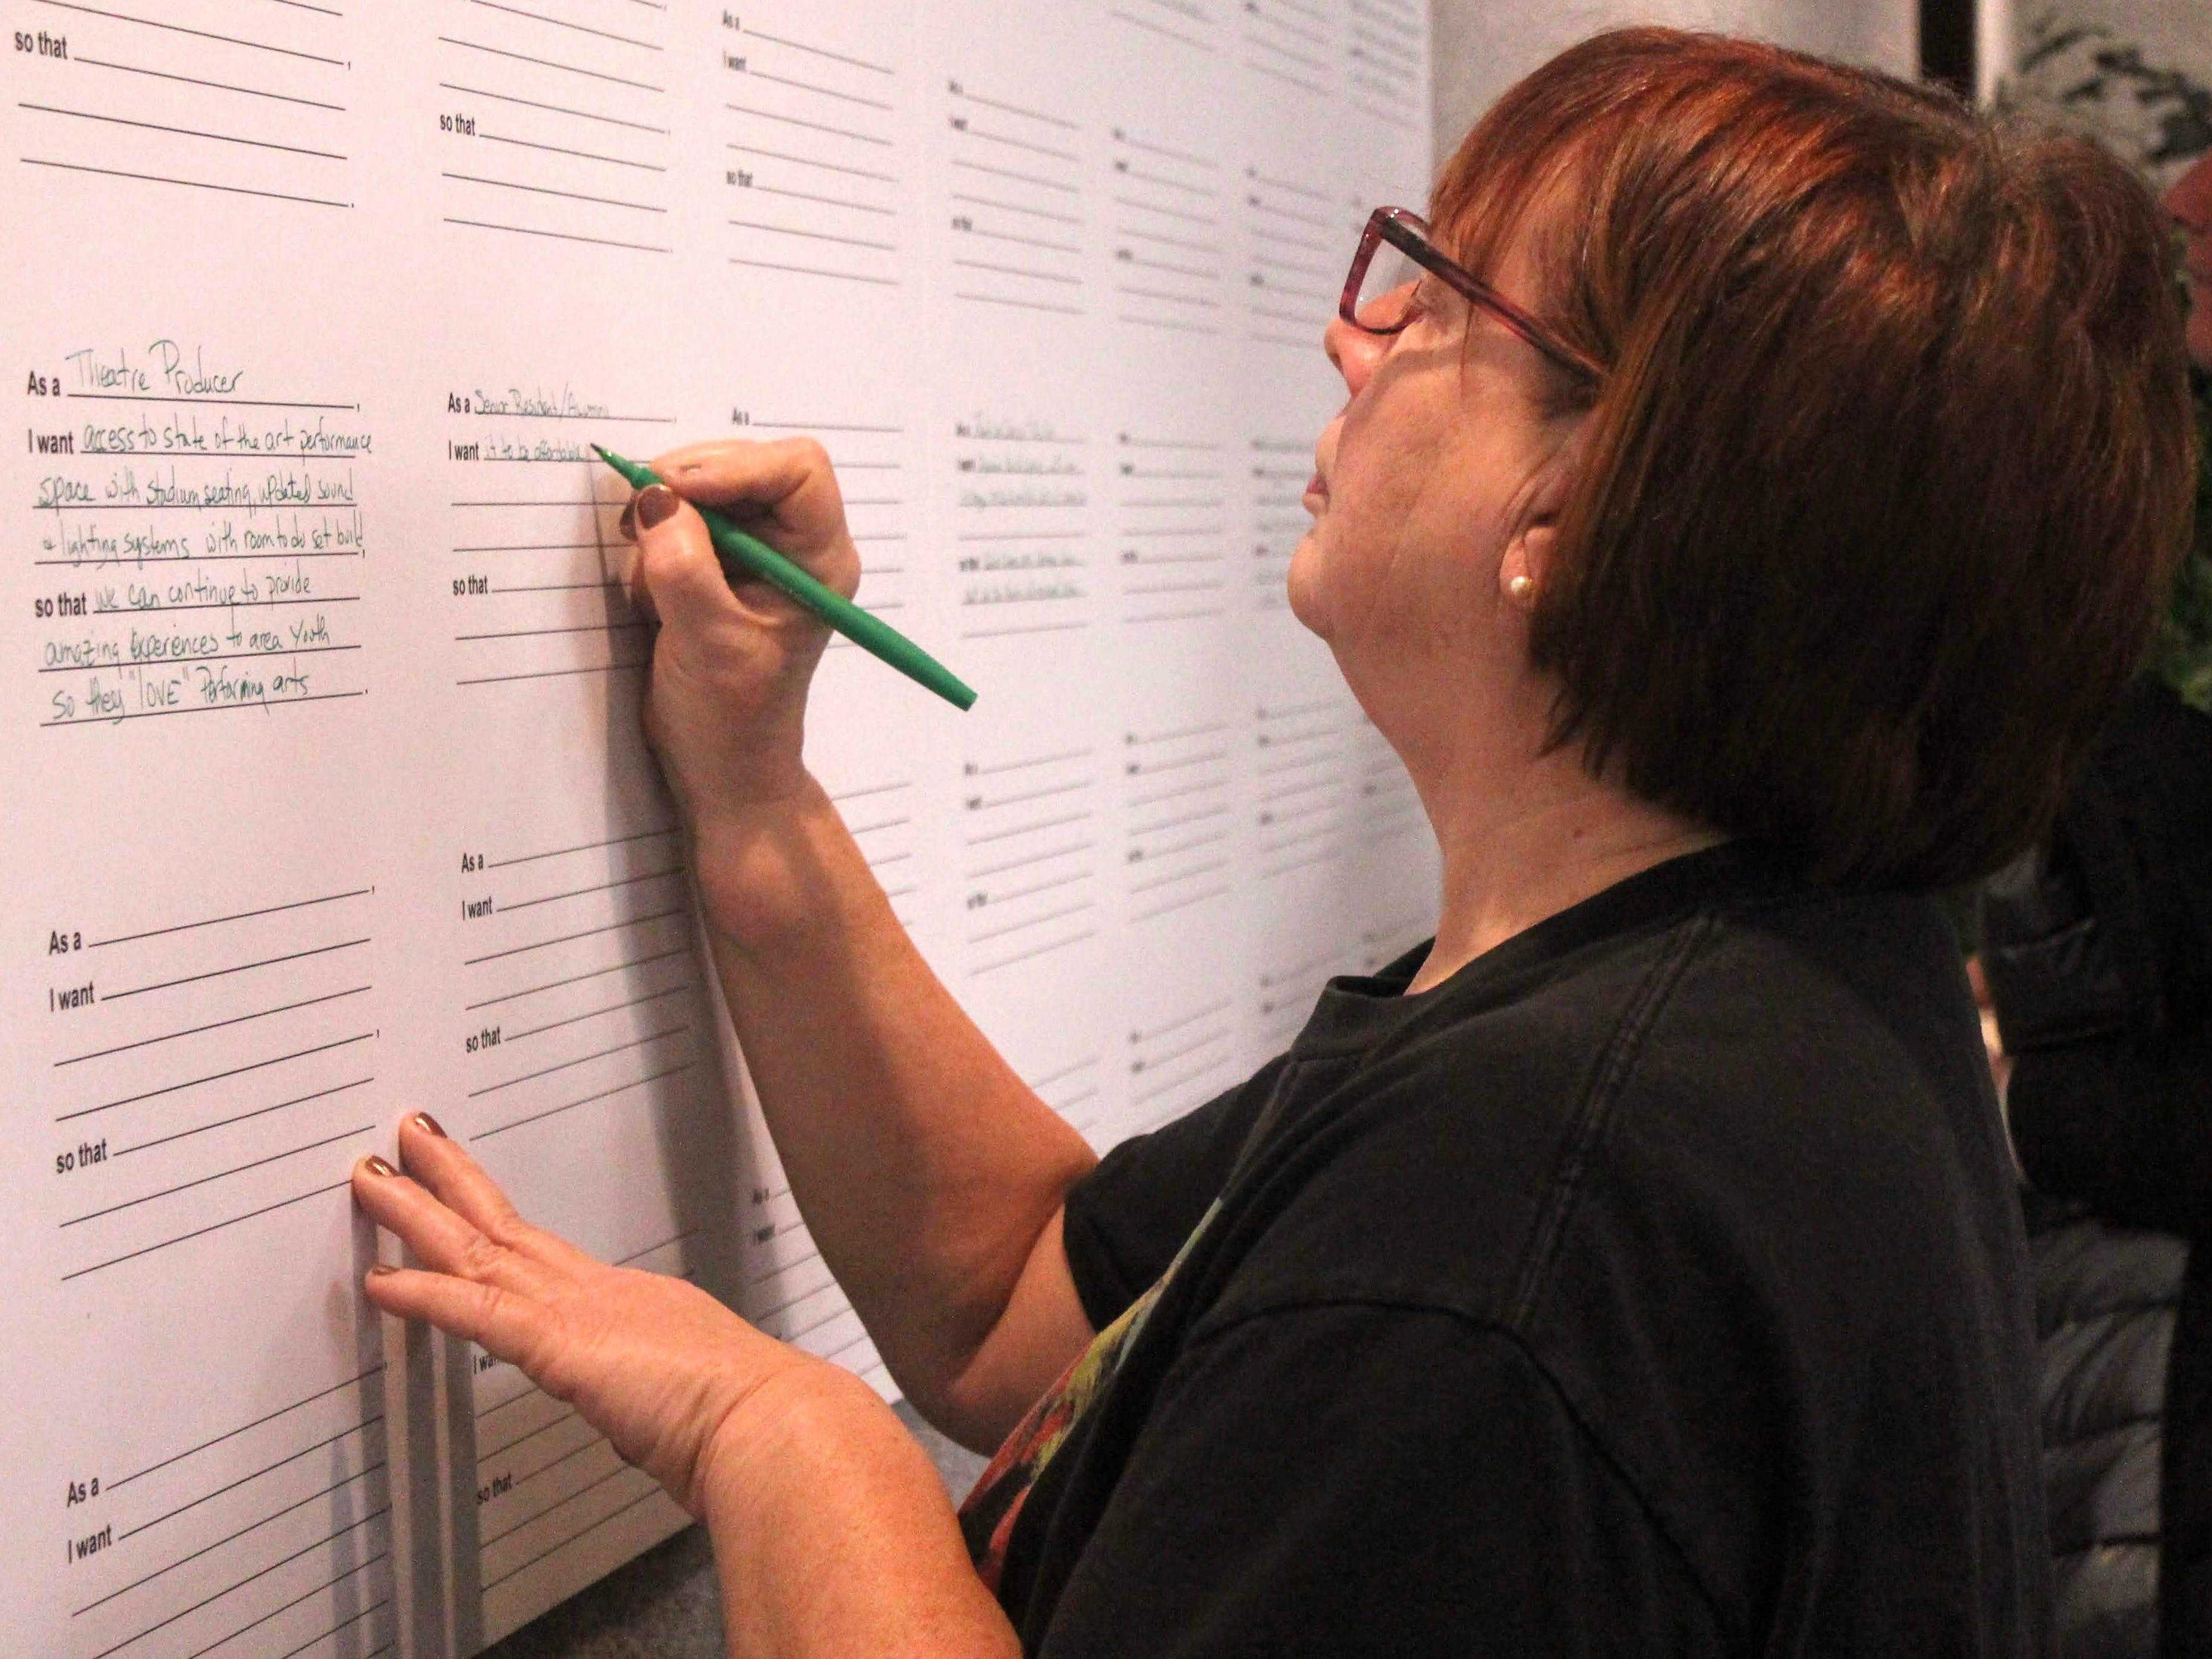 Farmington Hills resident Sandra Caldwell writes down what she would like to see at the Harrison site.